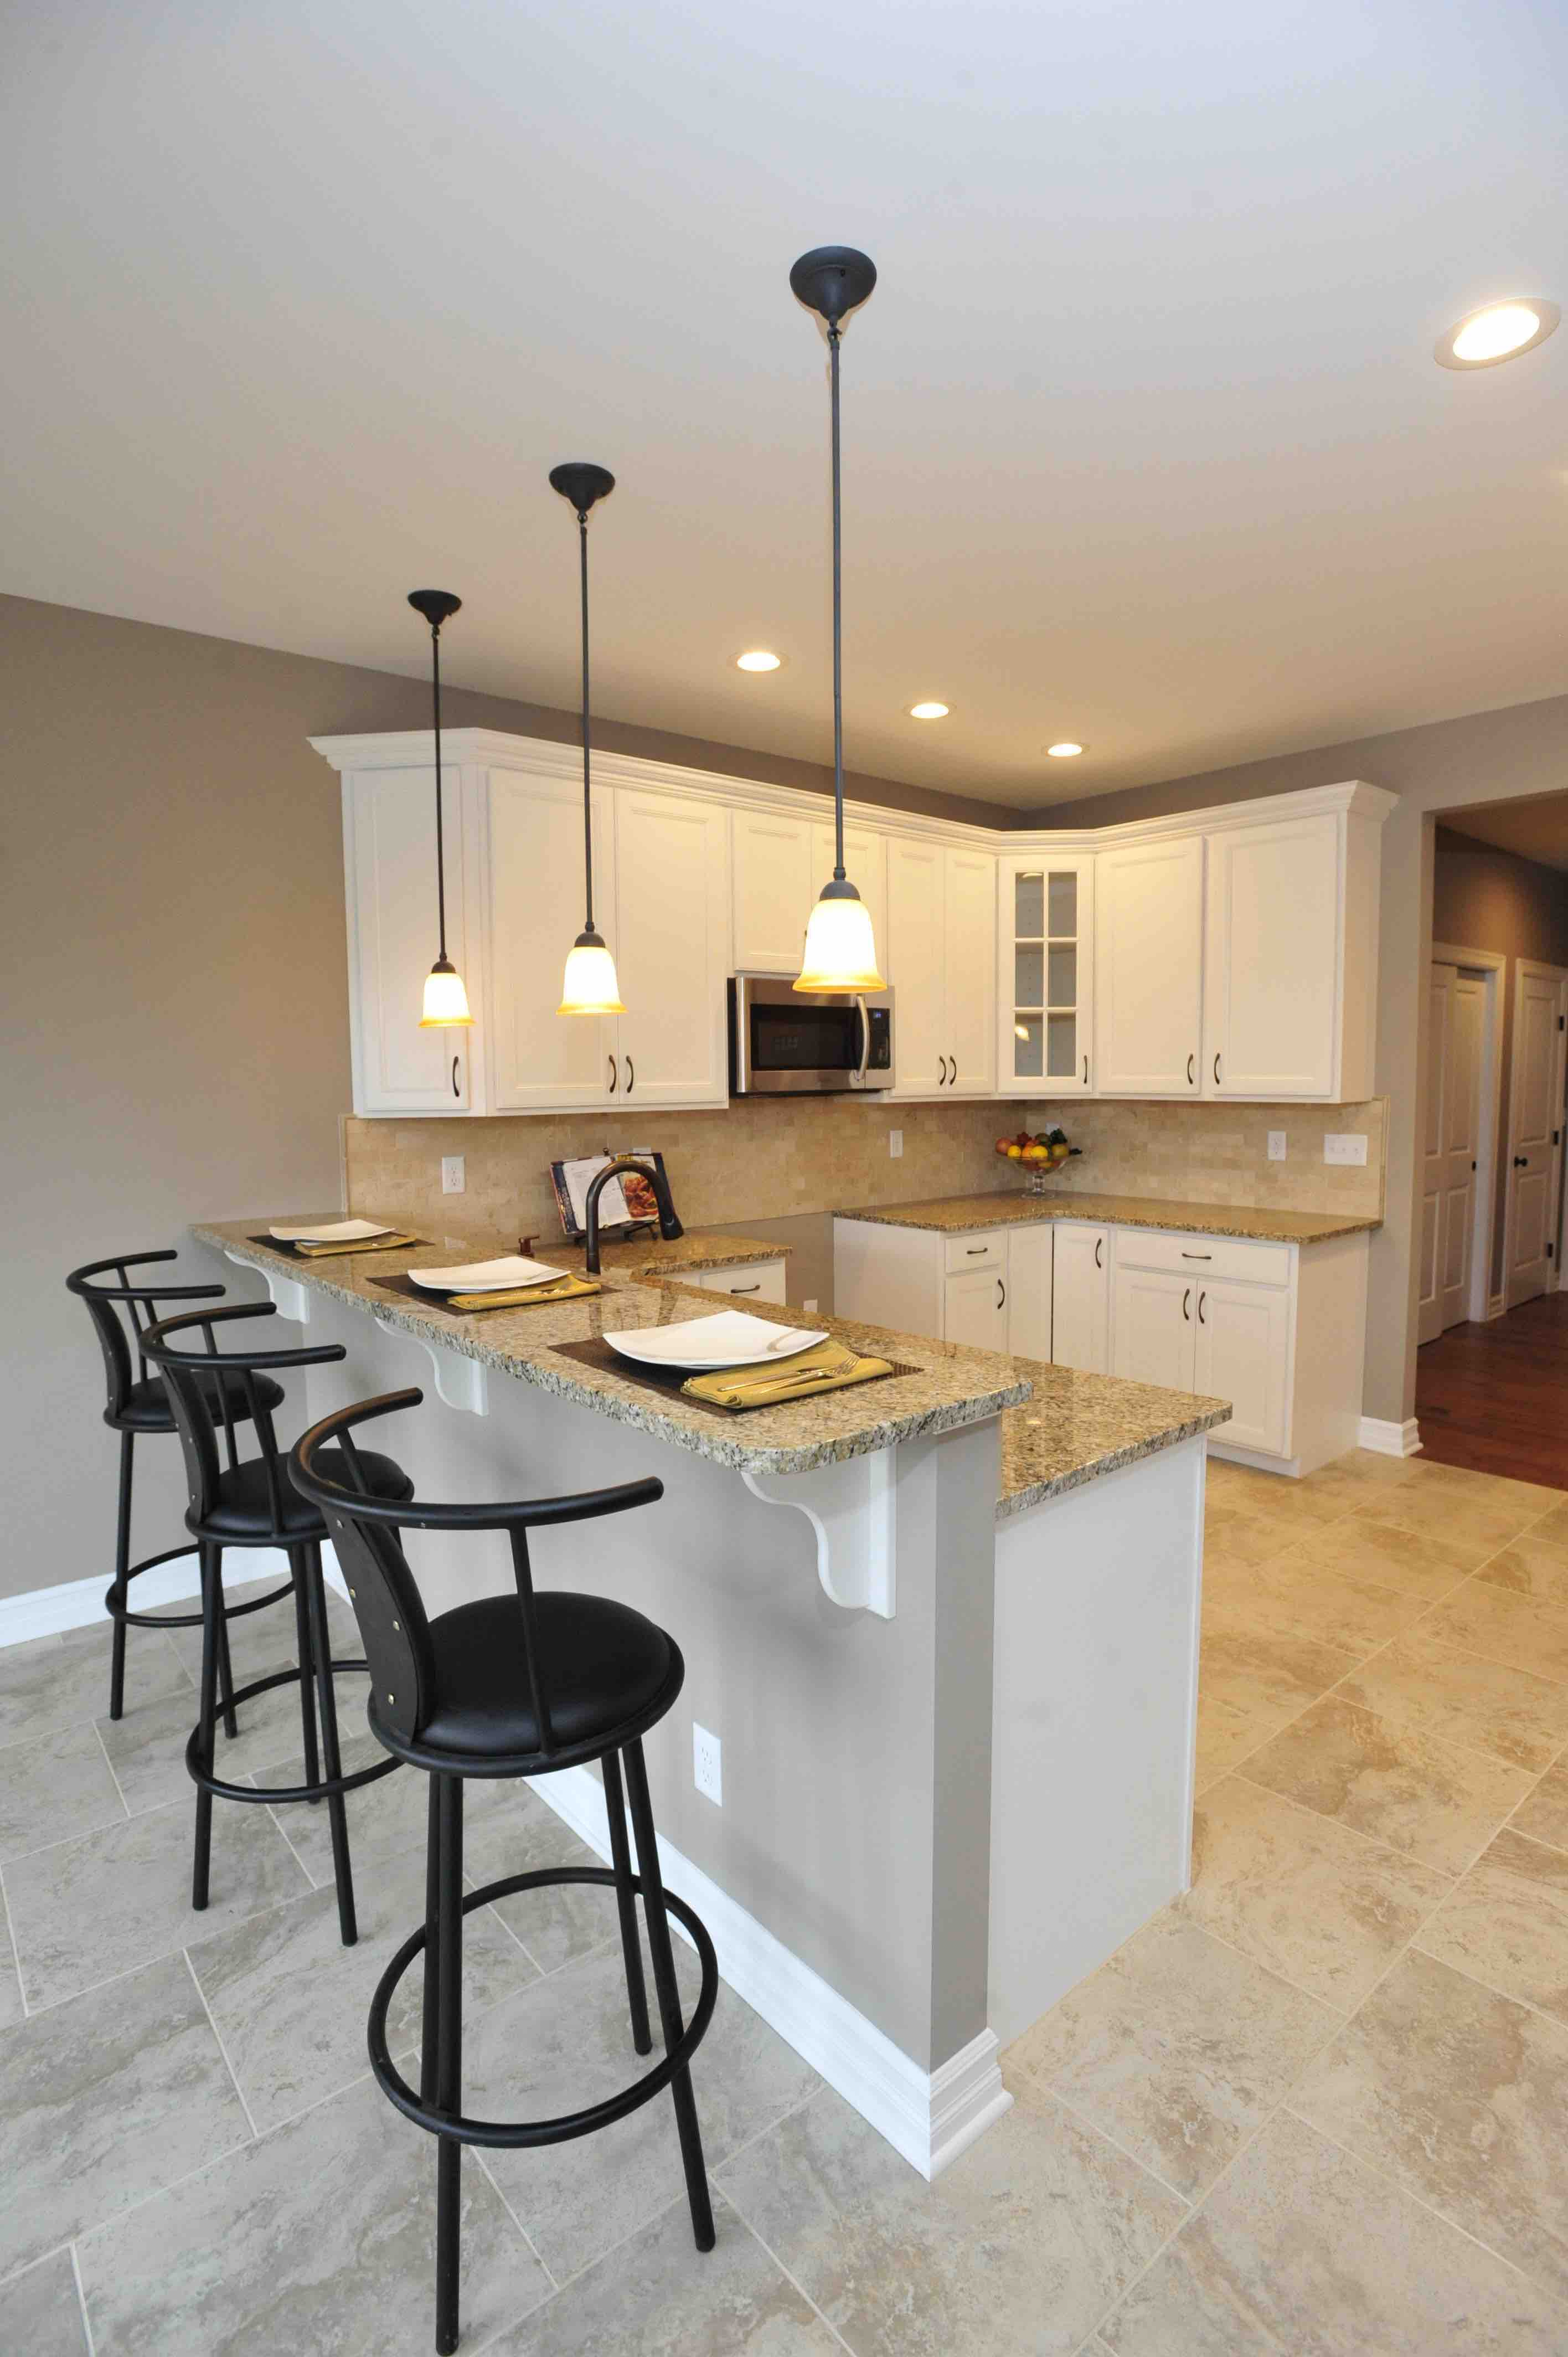 Featured home: lps custom homes highlights popular split ranch ...